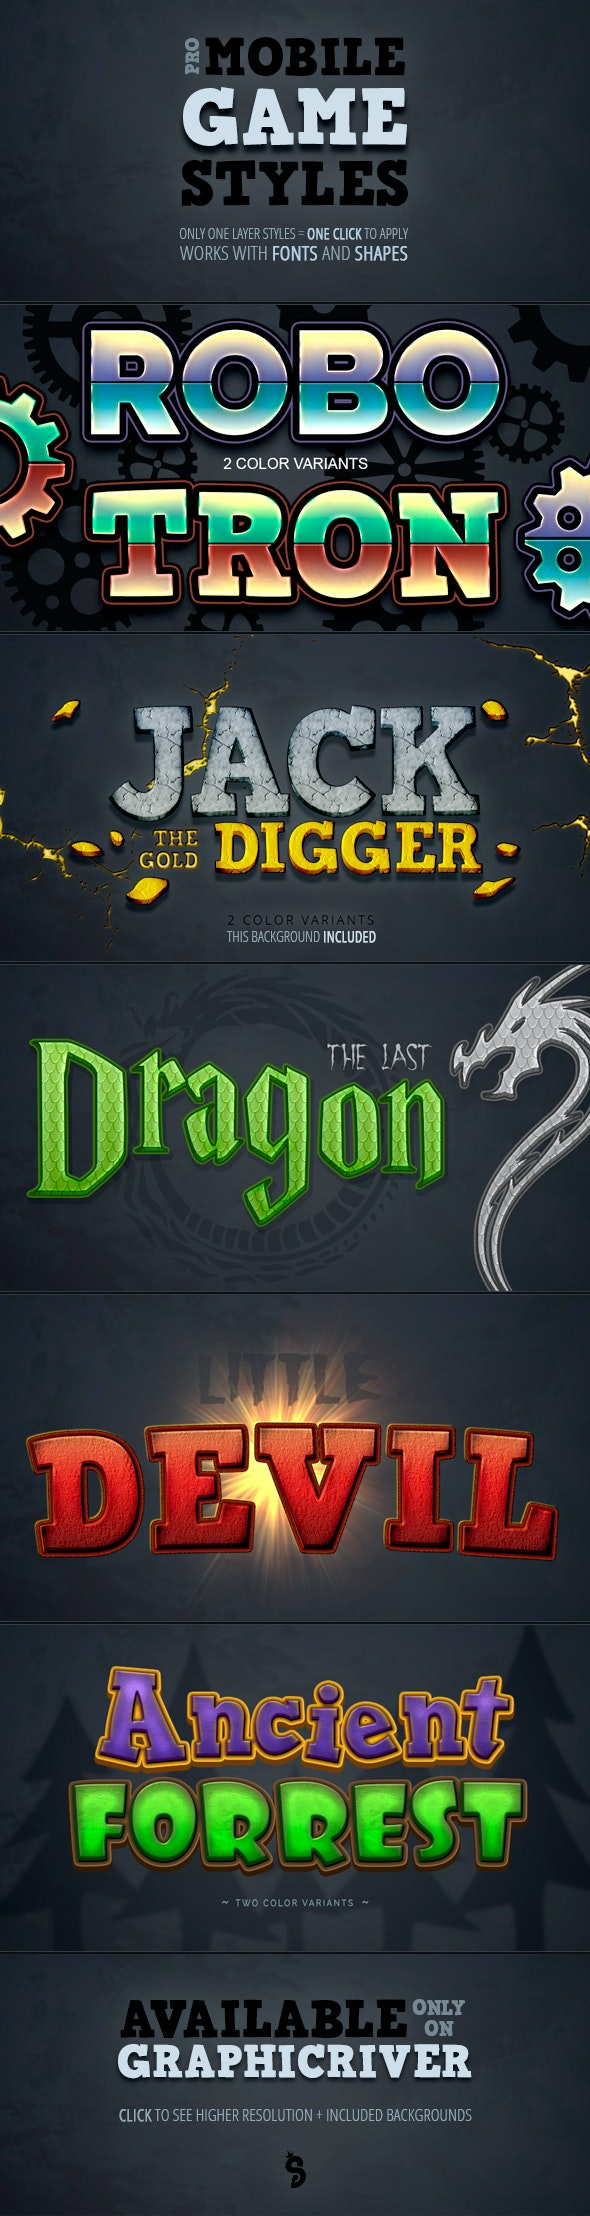 Mobile Game Photoshop Styles - Text Effects Styles